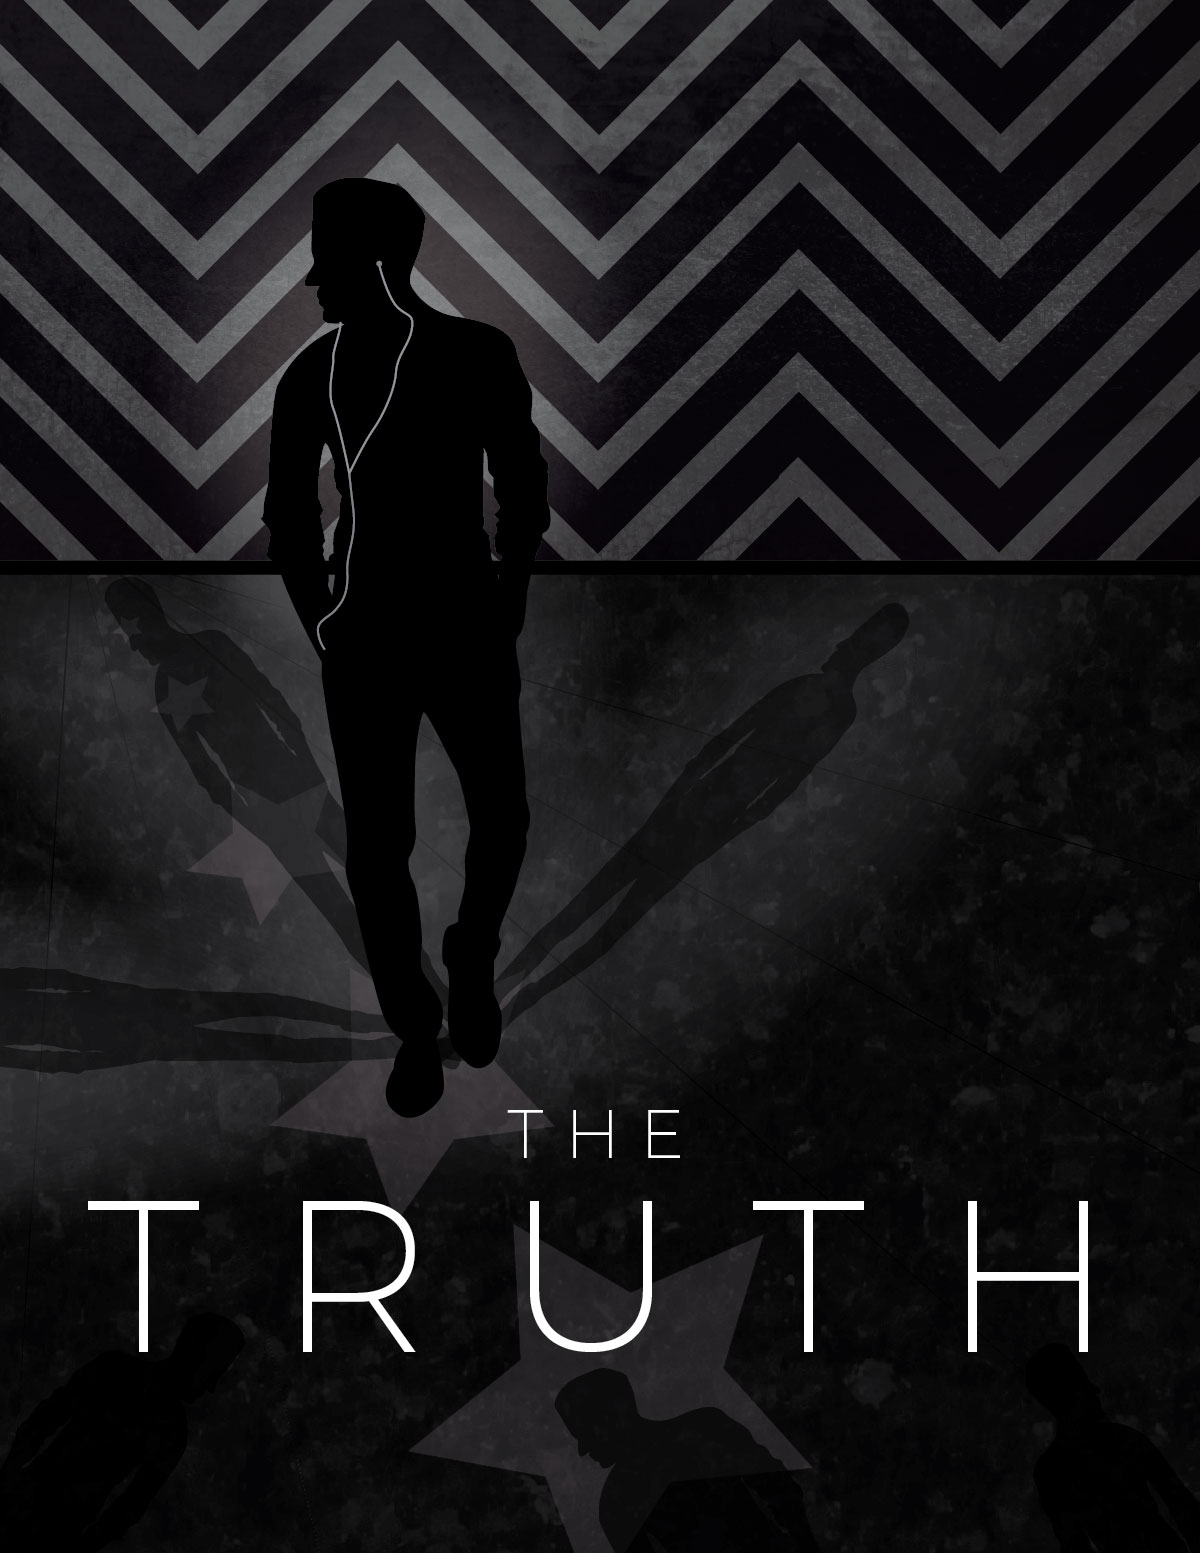 The Truth Postcard/Flyer Design